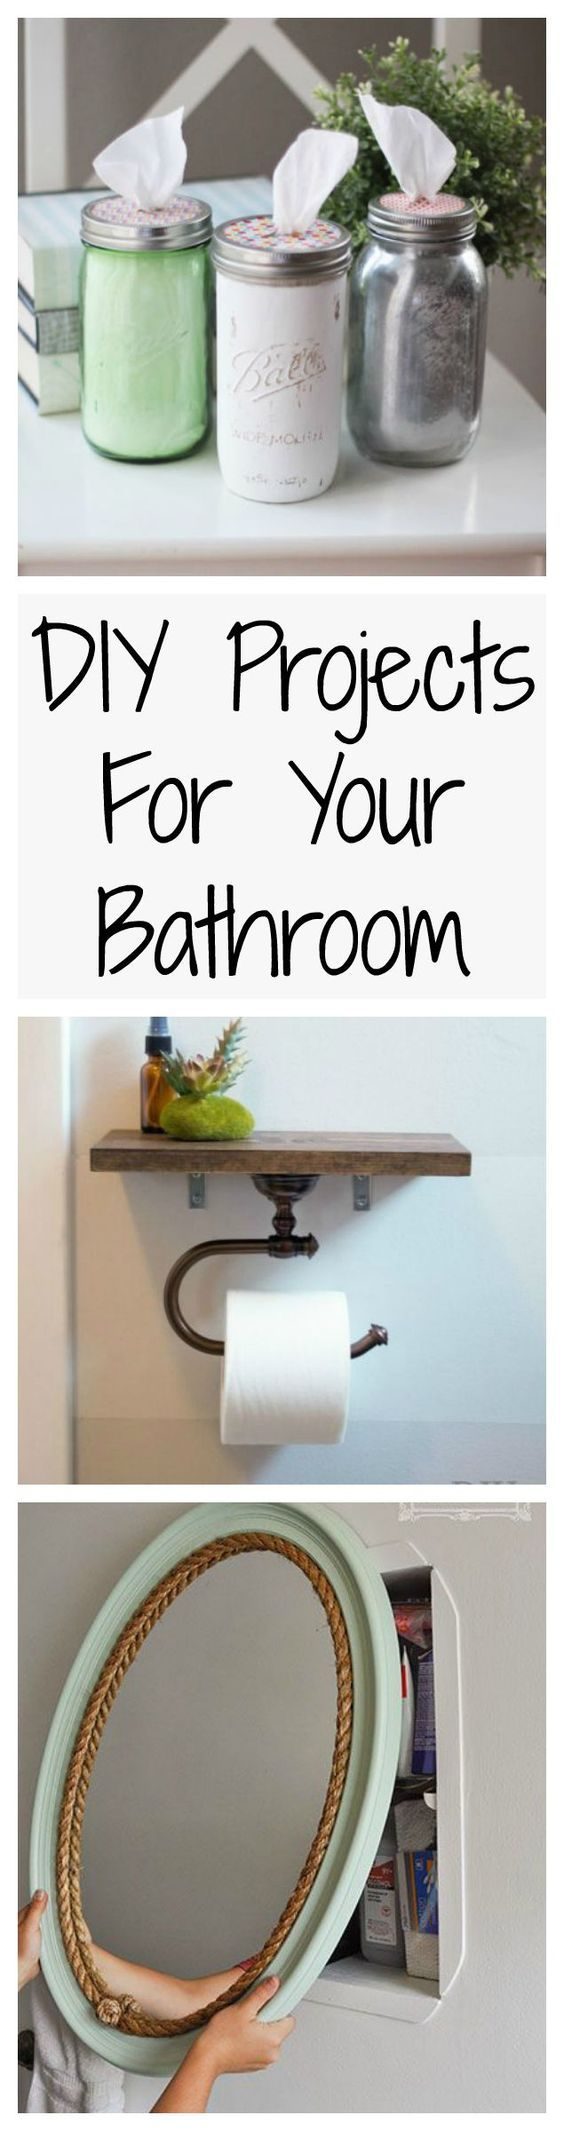 Diy Items You Never Realized Your Bathroom Needed